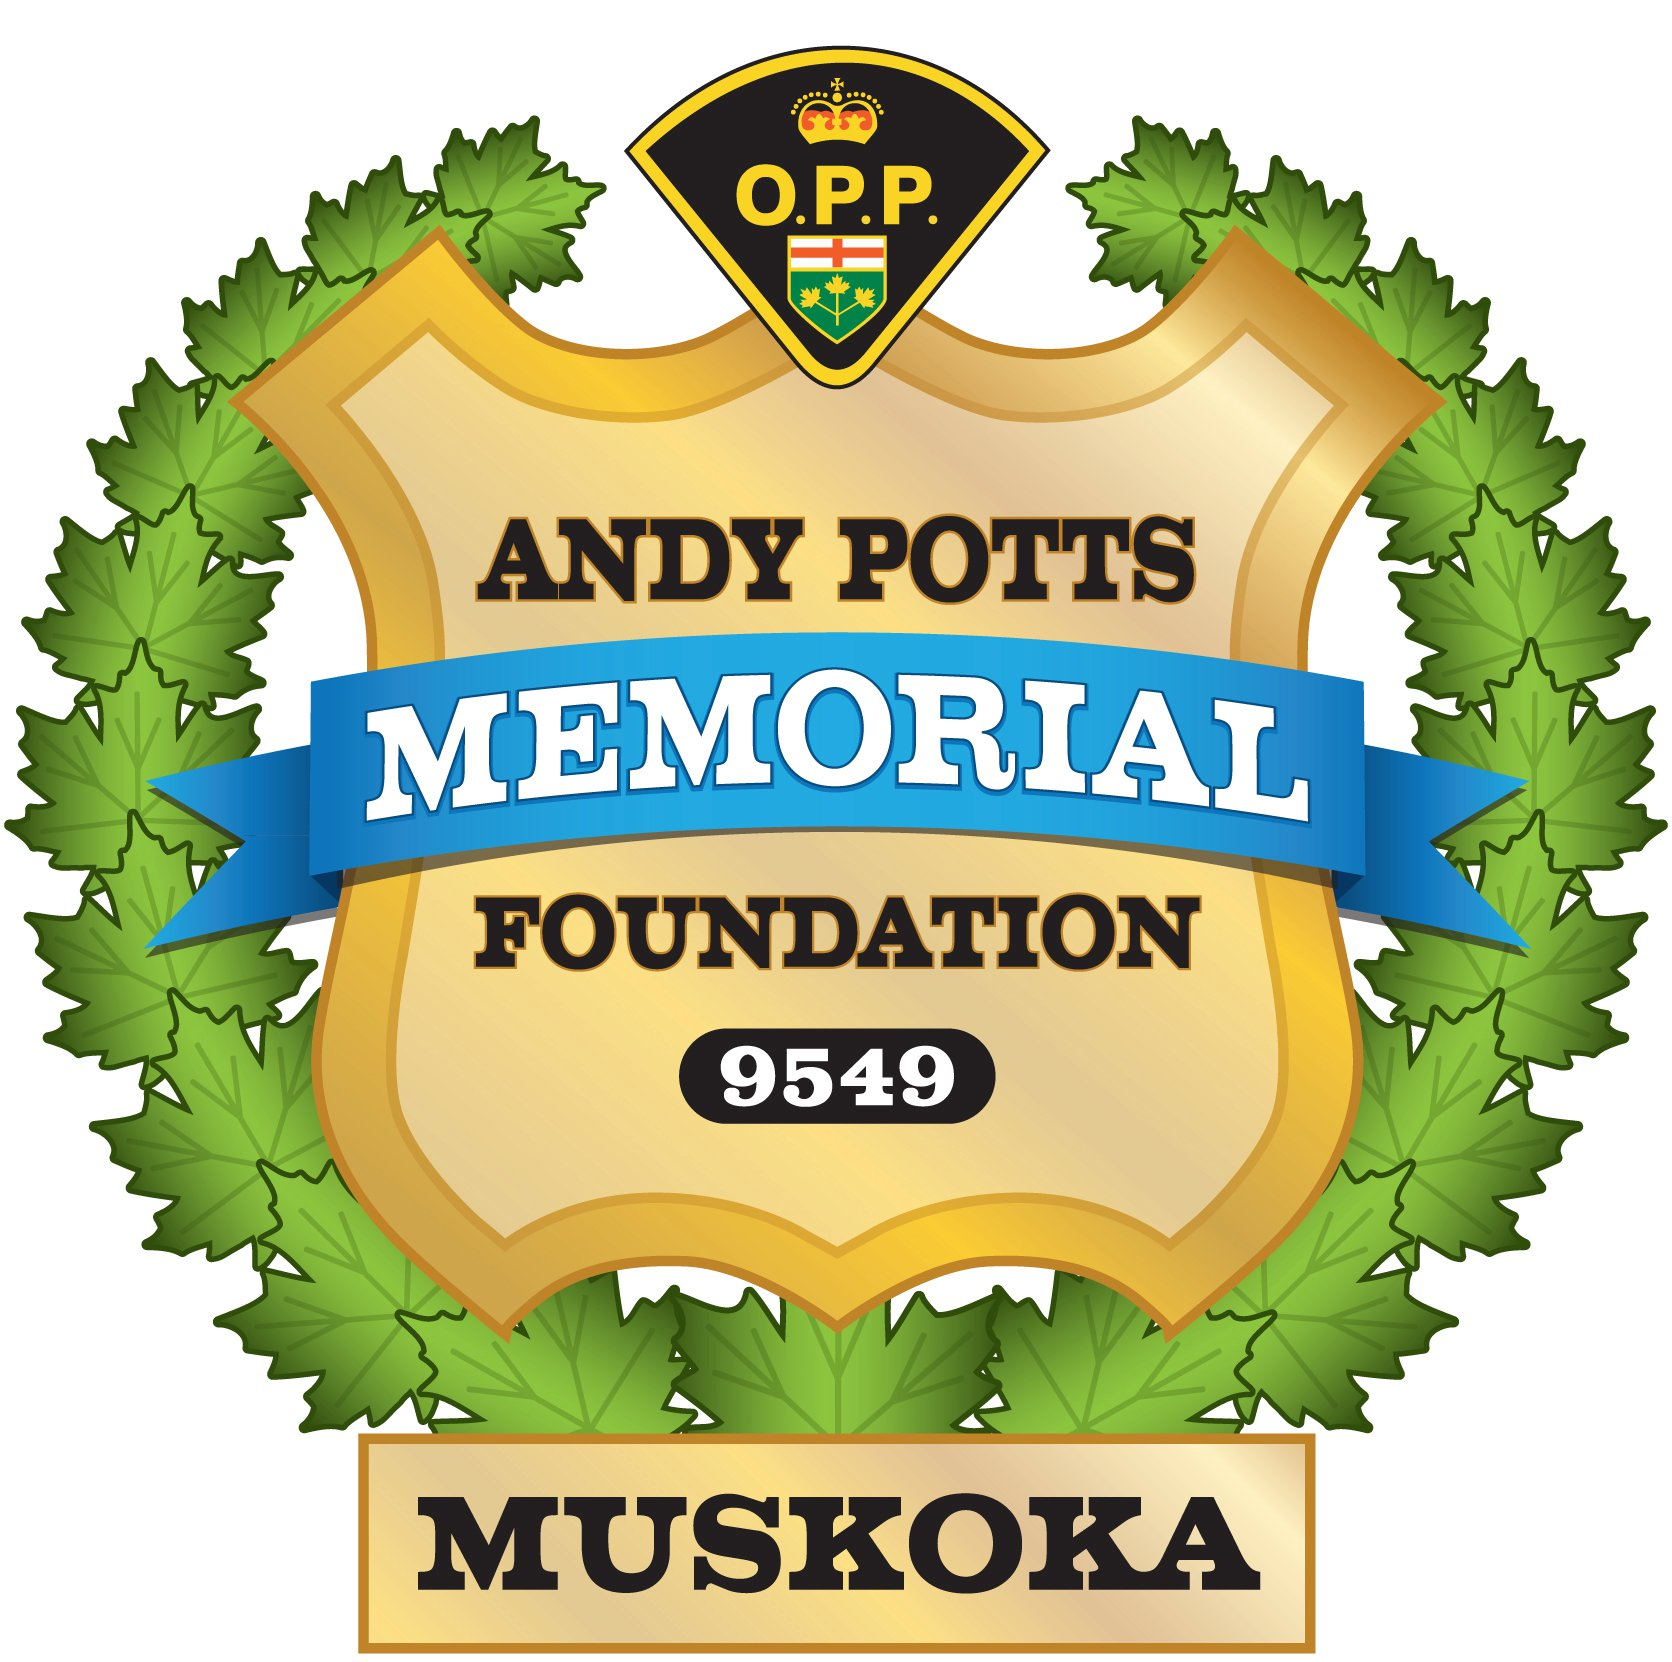 Andy Potts Memorial Foundation